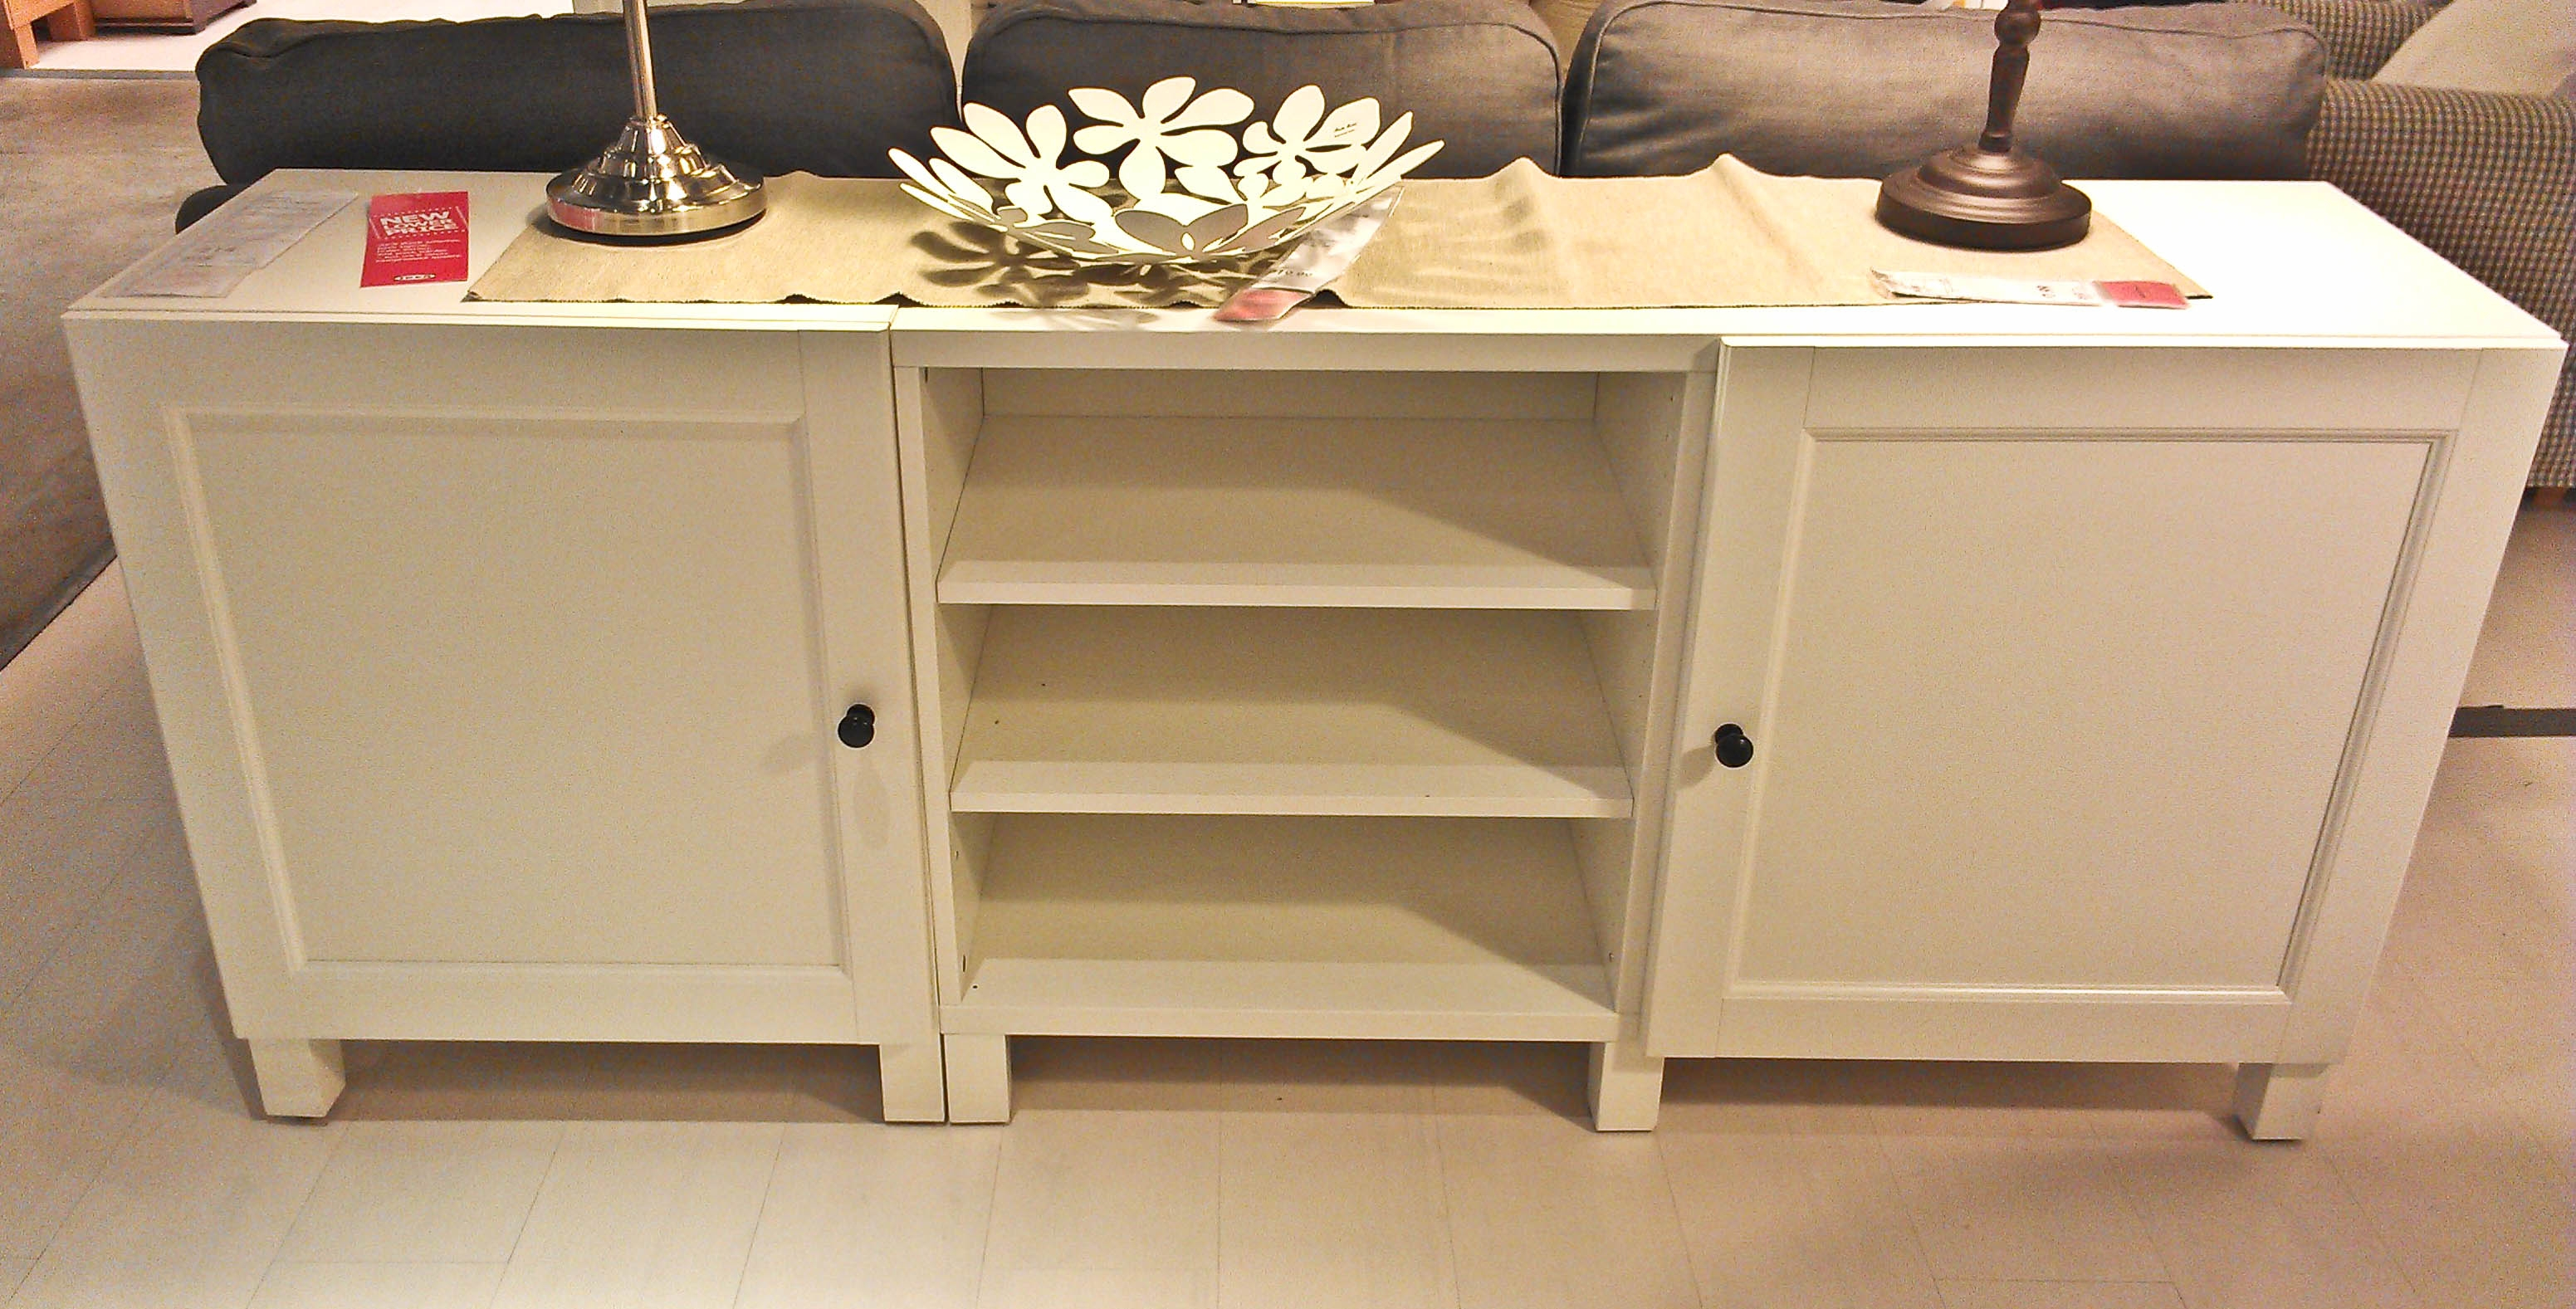 Long Storage Cabinets With Doorsfurniture long white wooden storage with triple shelves on the